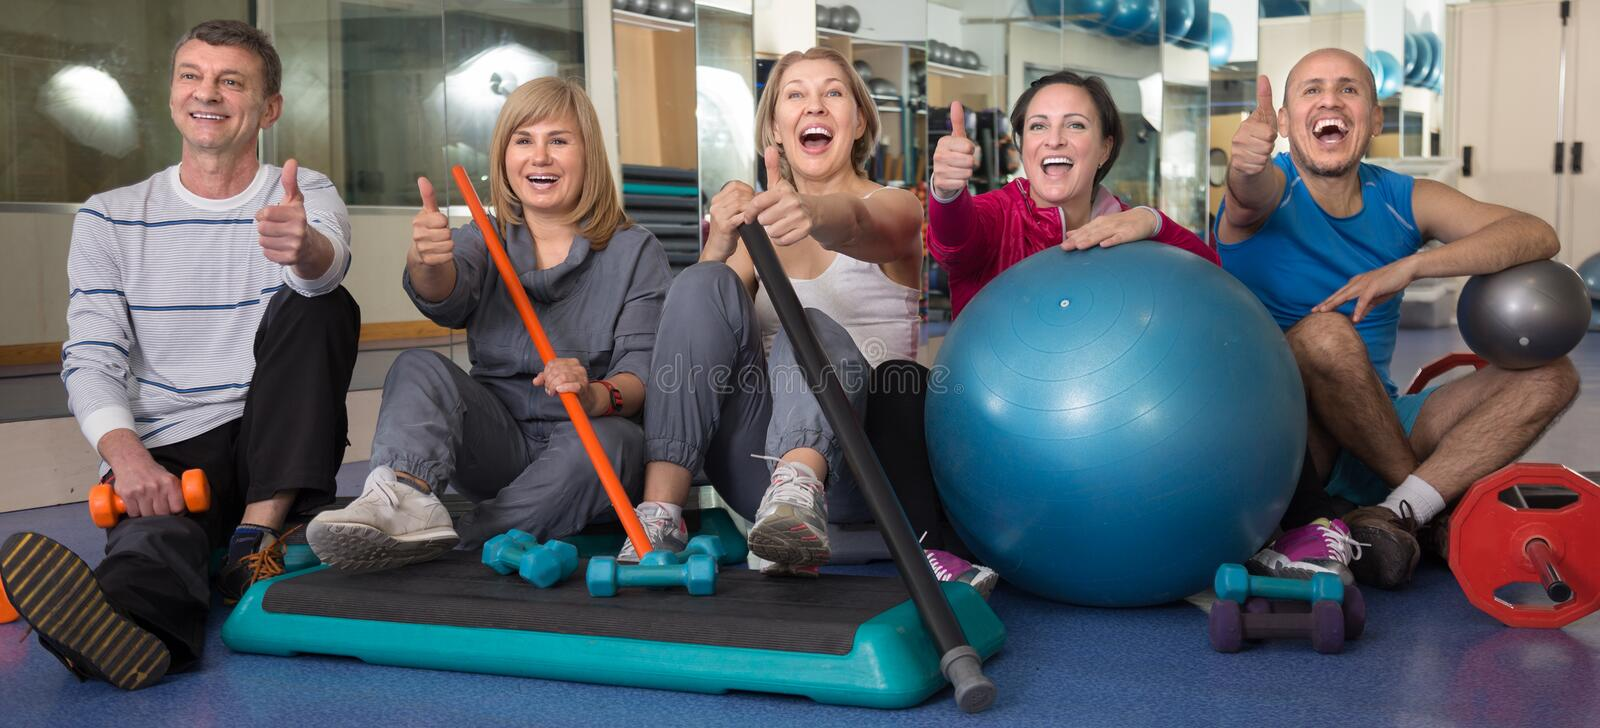 Group of people posing with gymnastic facilities at the gym royalty free stock photography